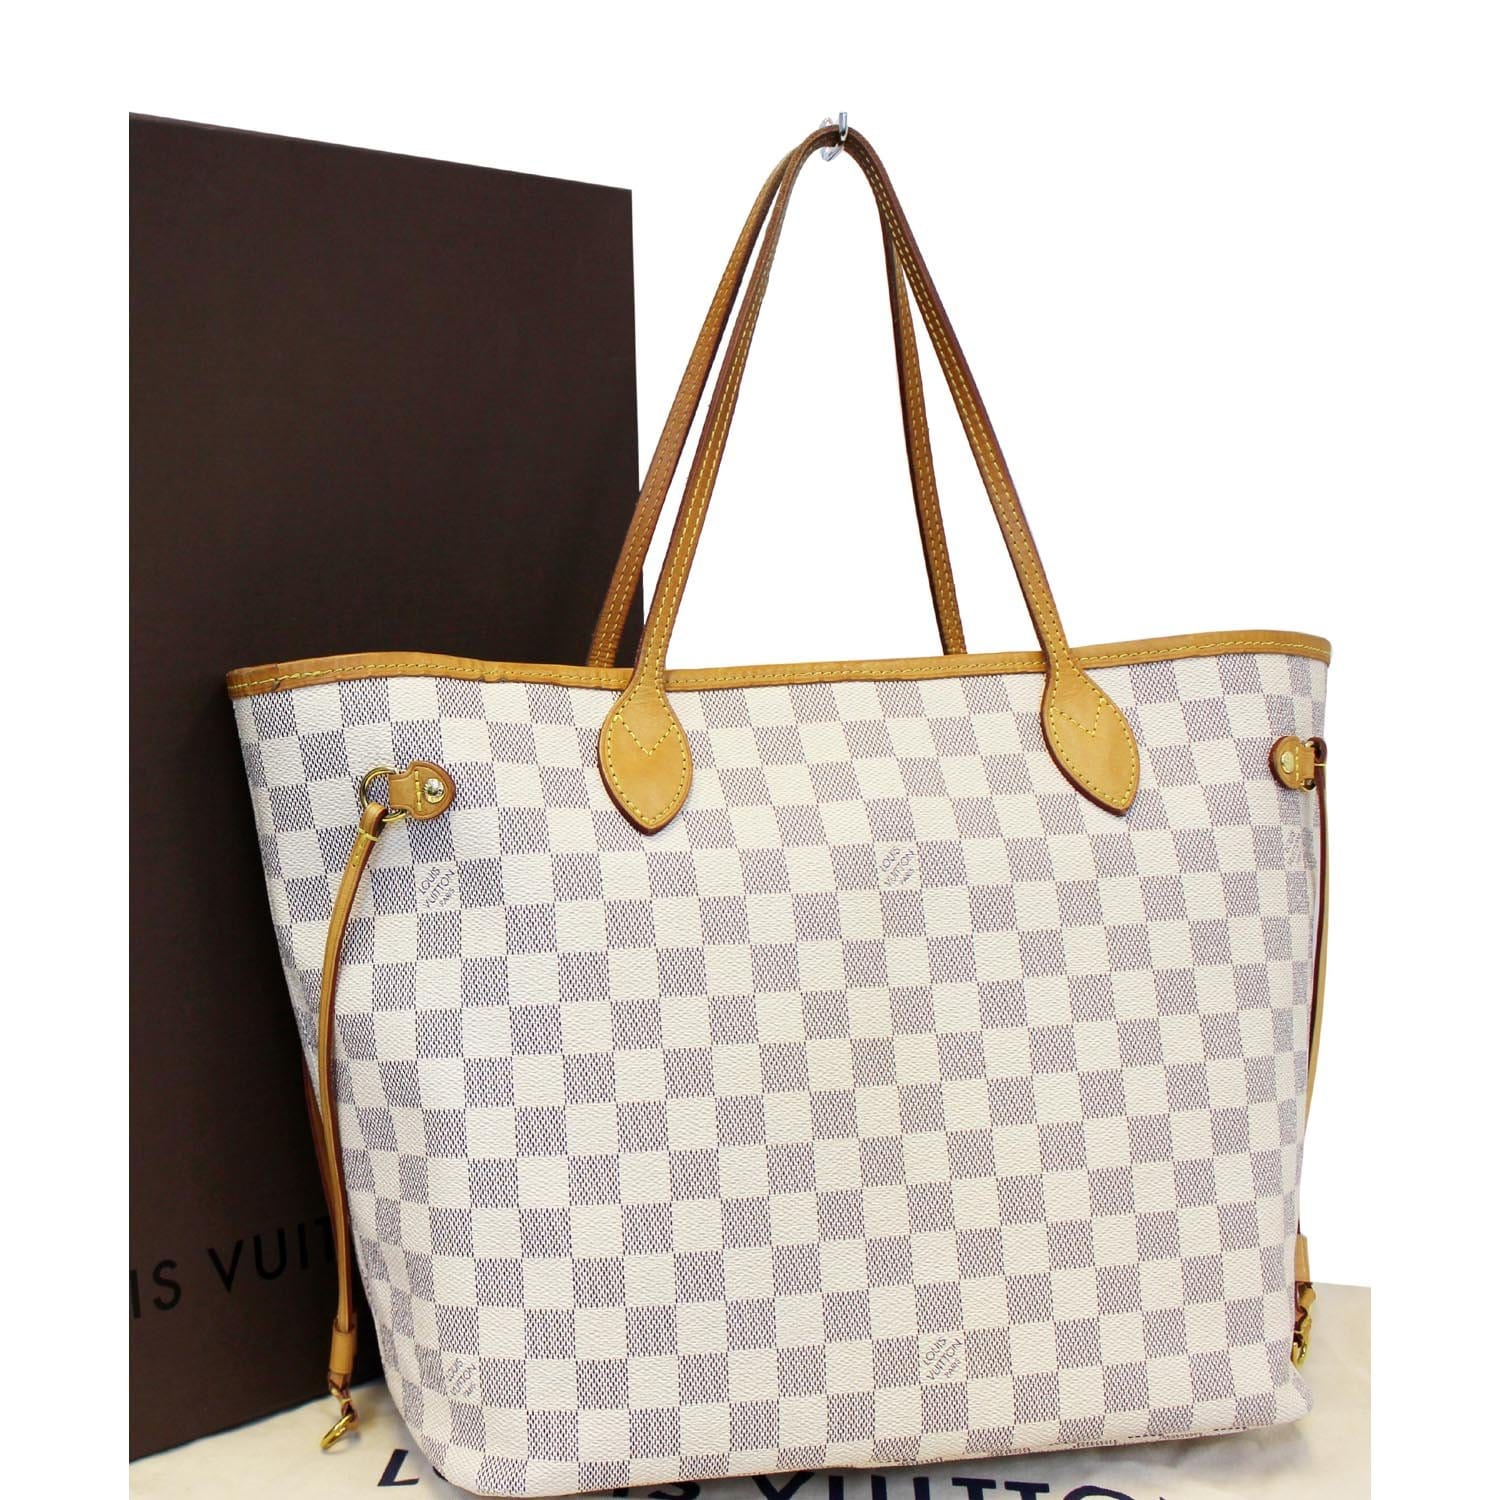 8568d713d445 LOUIS VUITTON Neverfull MM Damier Azur Tote Bag-US